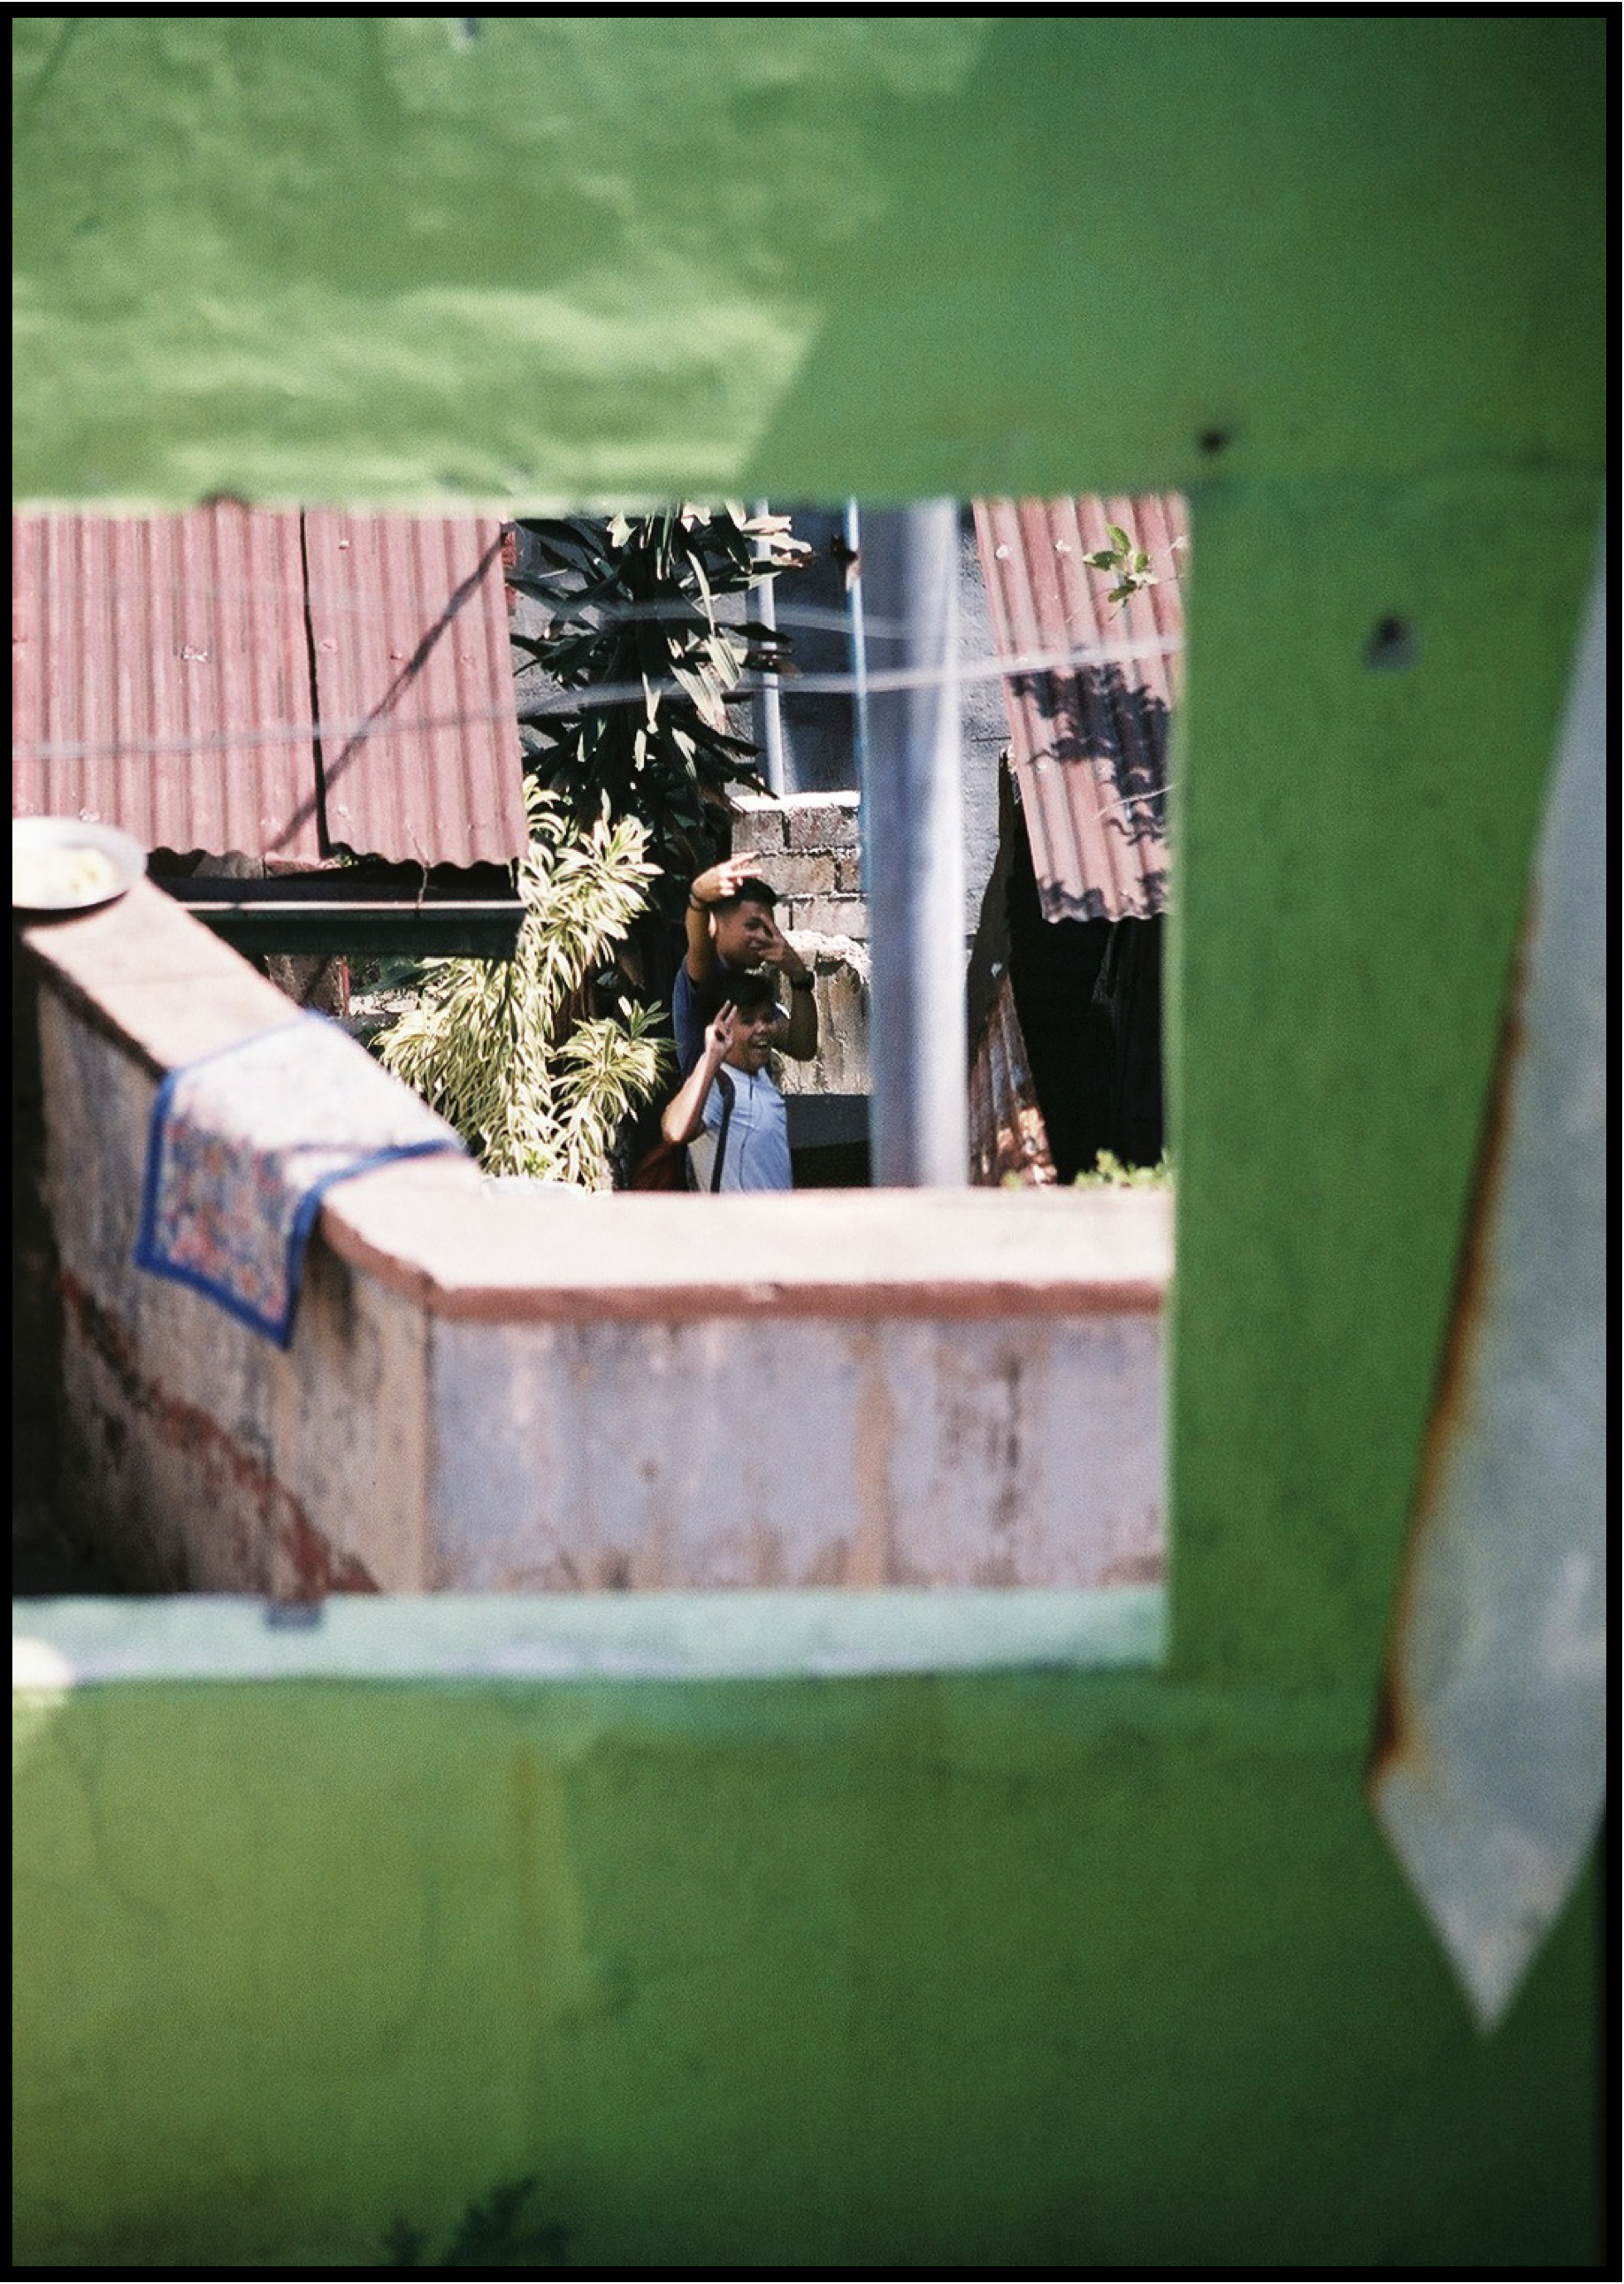 CoxCo_daily_life_Philippines_02 2019-08-12 0.43.50.png